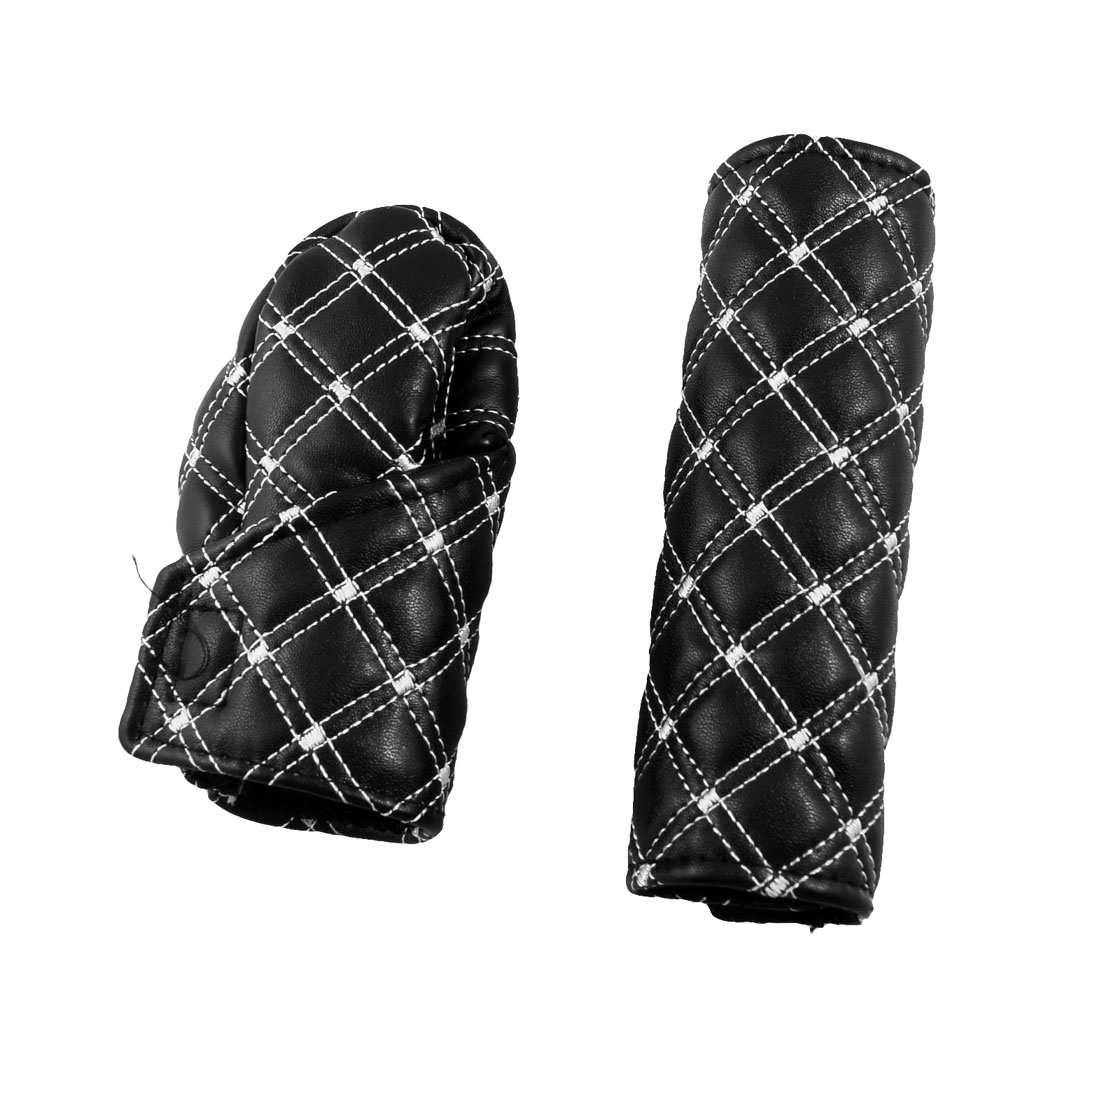 2 in 1 Car Faux Leather Gear Knob Hand Brake Cover Kit Black